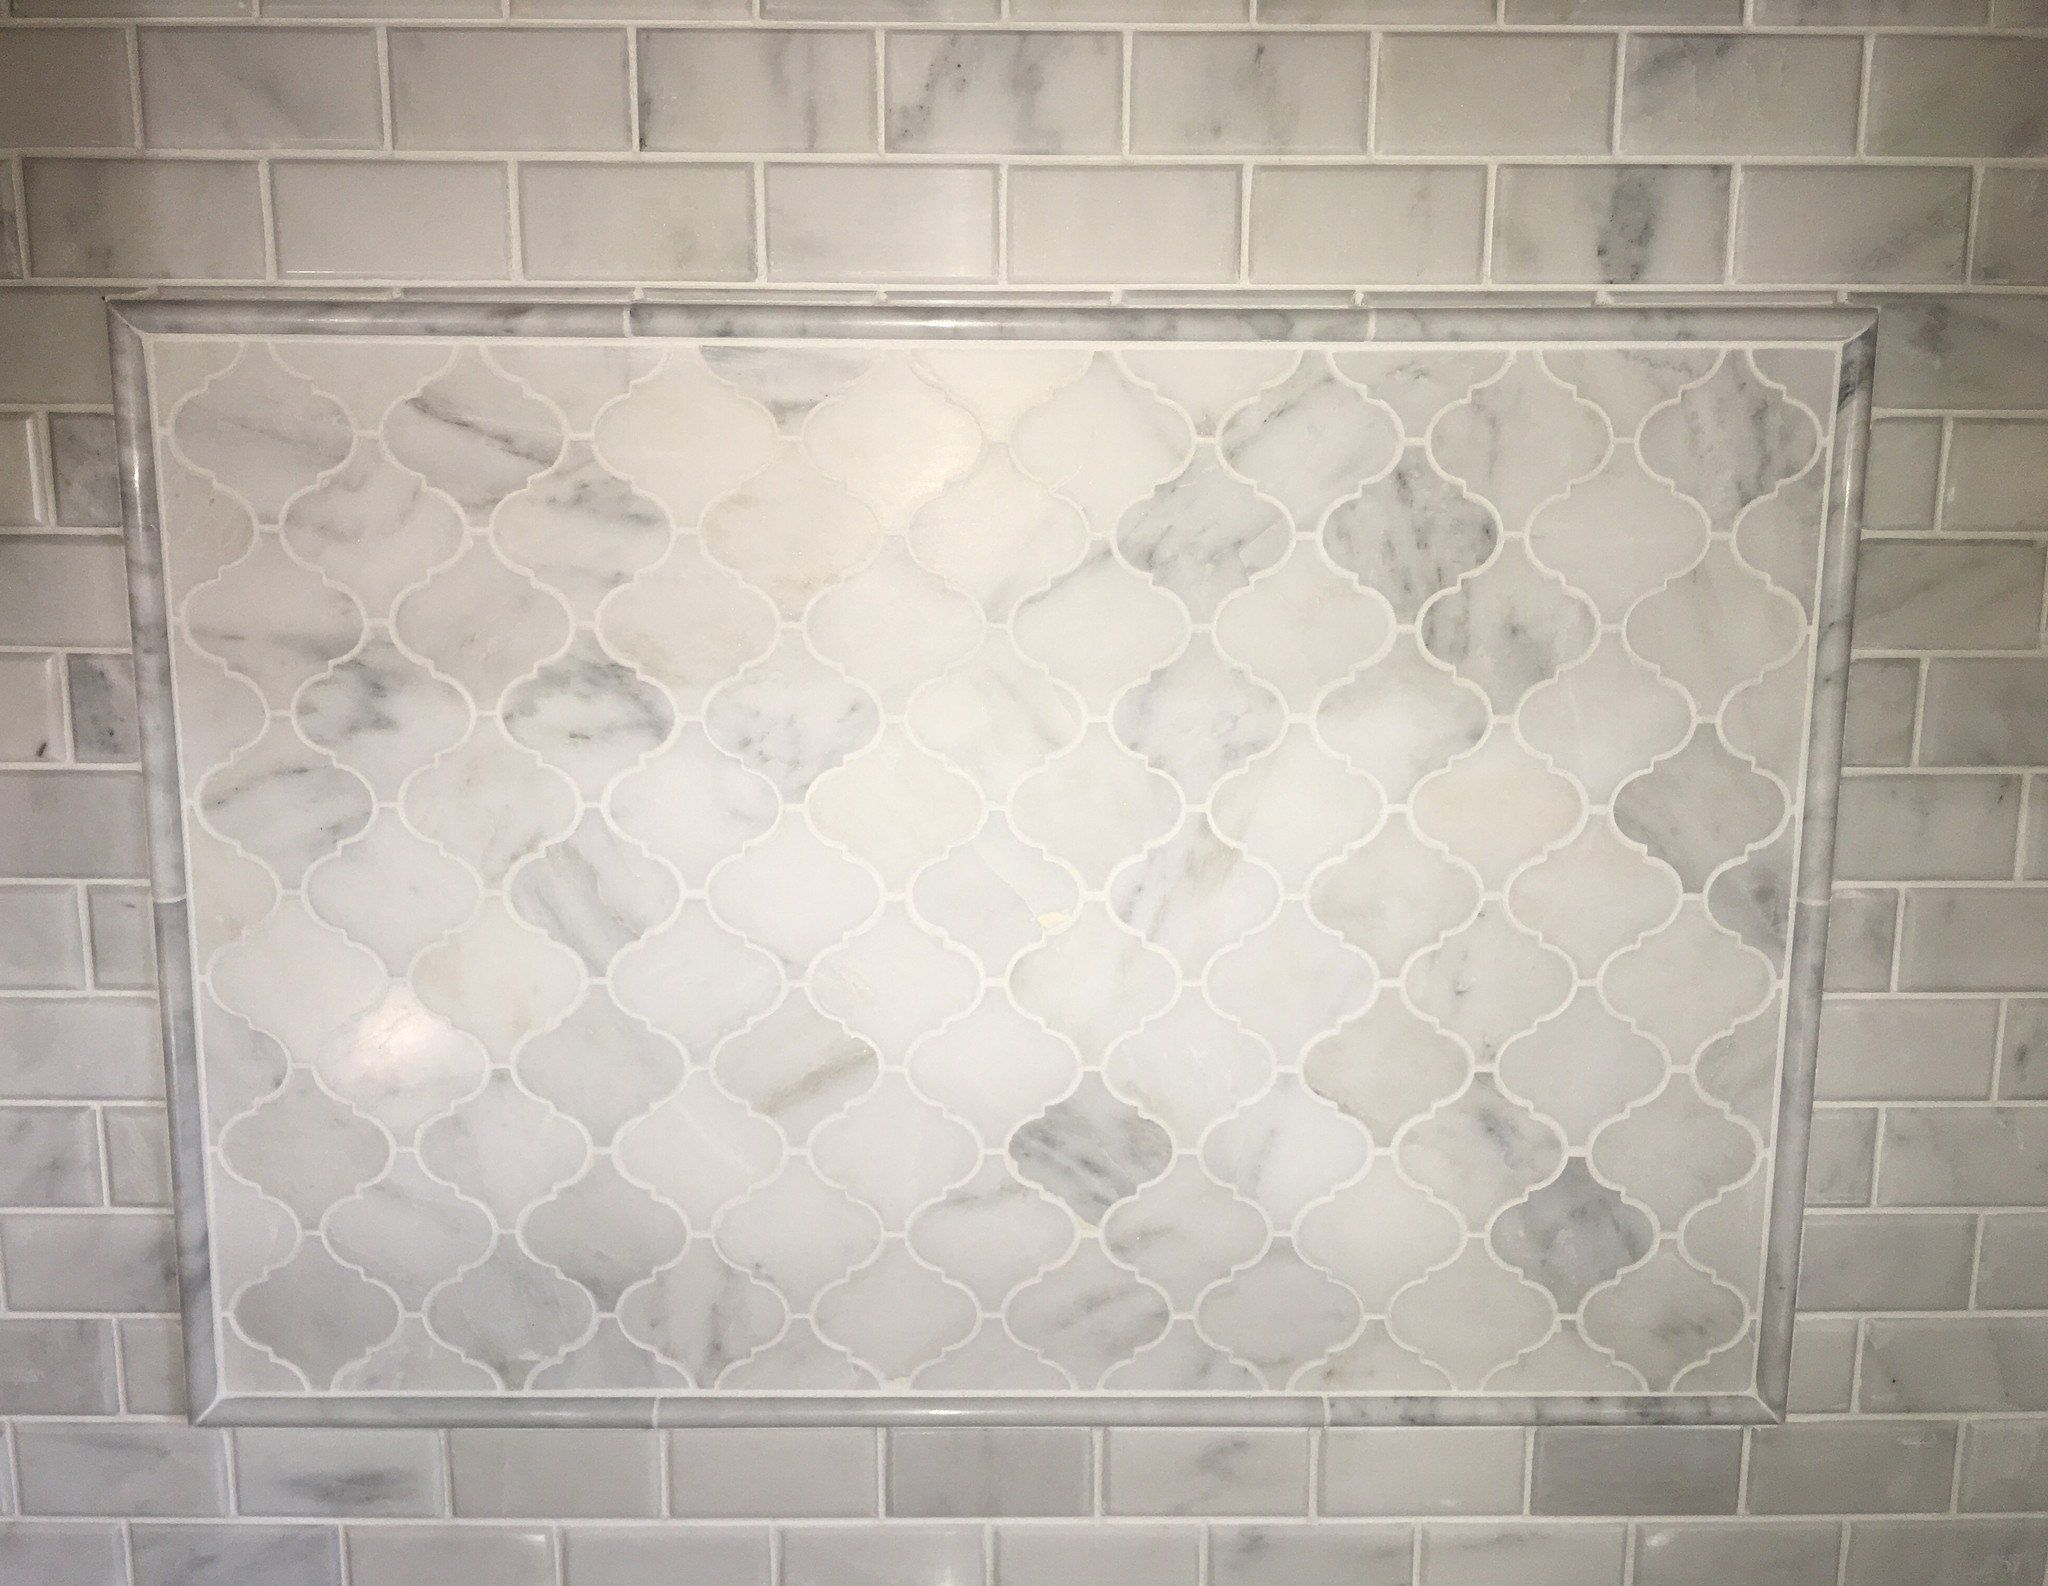 Venato Carrara Honed Marble 2x4 Beveled Subway Tile Sheet Size 12x12 Material Thickness 3 8 Subwa Kitchen Backsplash Trends Kitchen Design Diy Luxury Tile